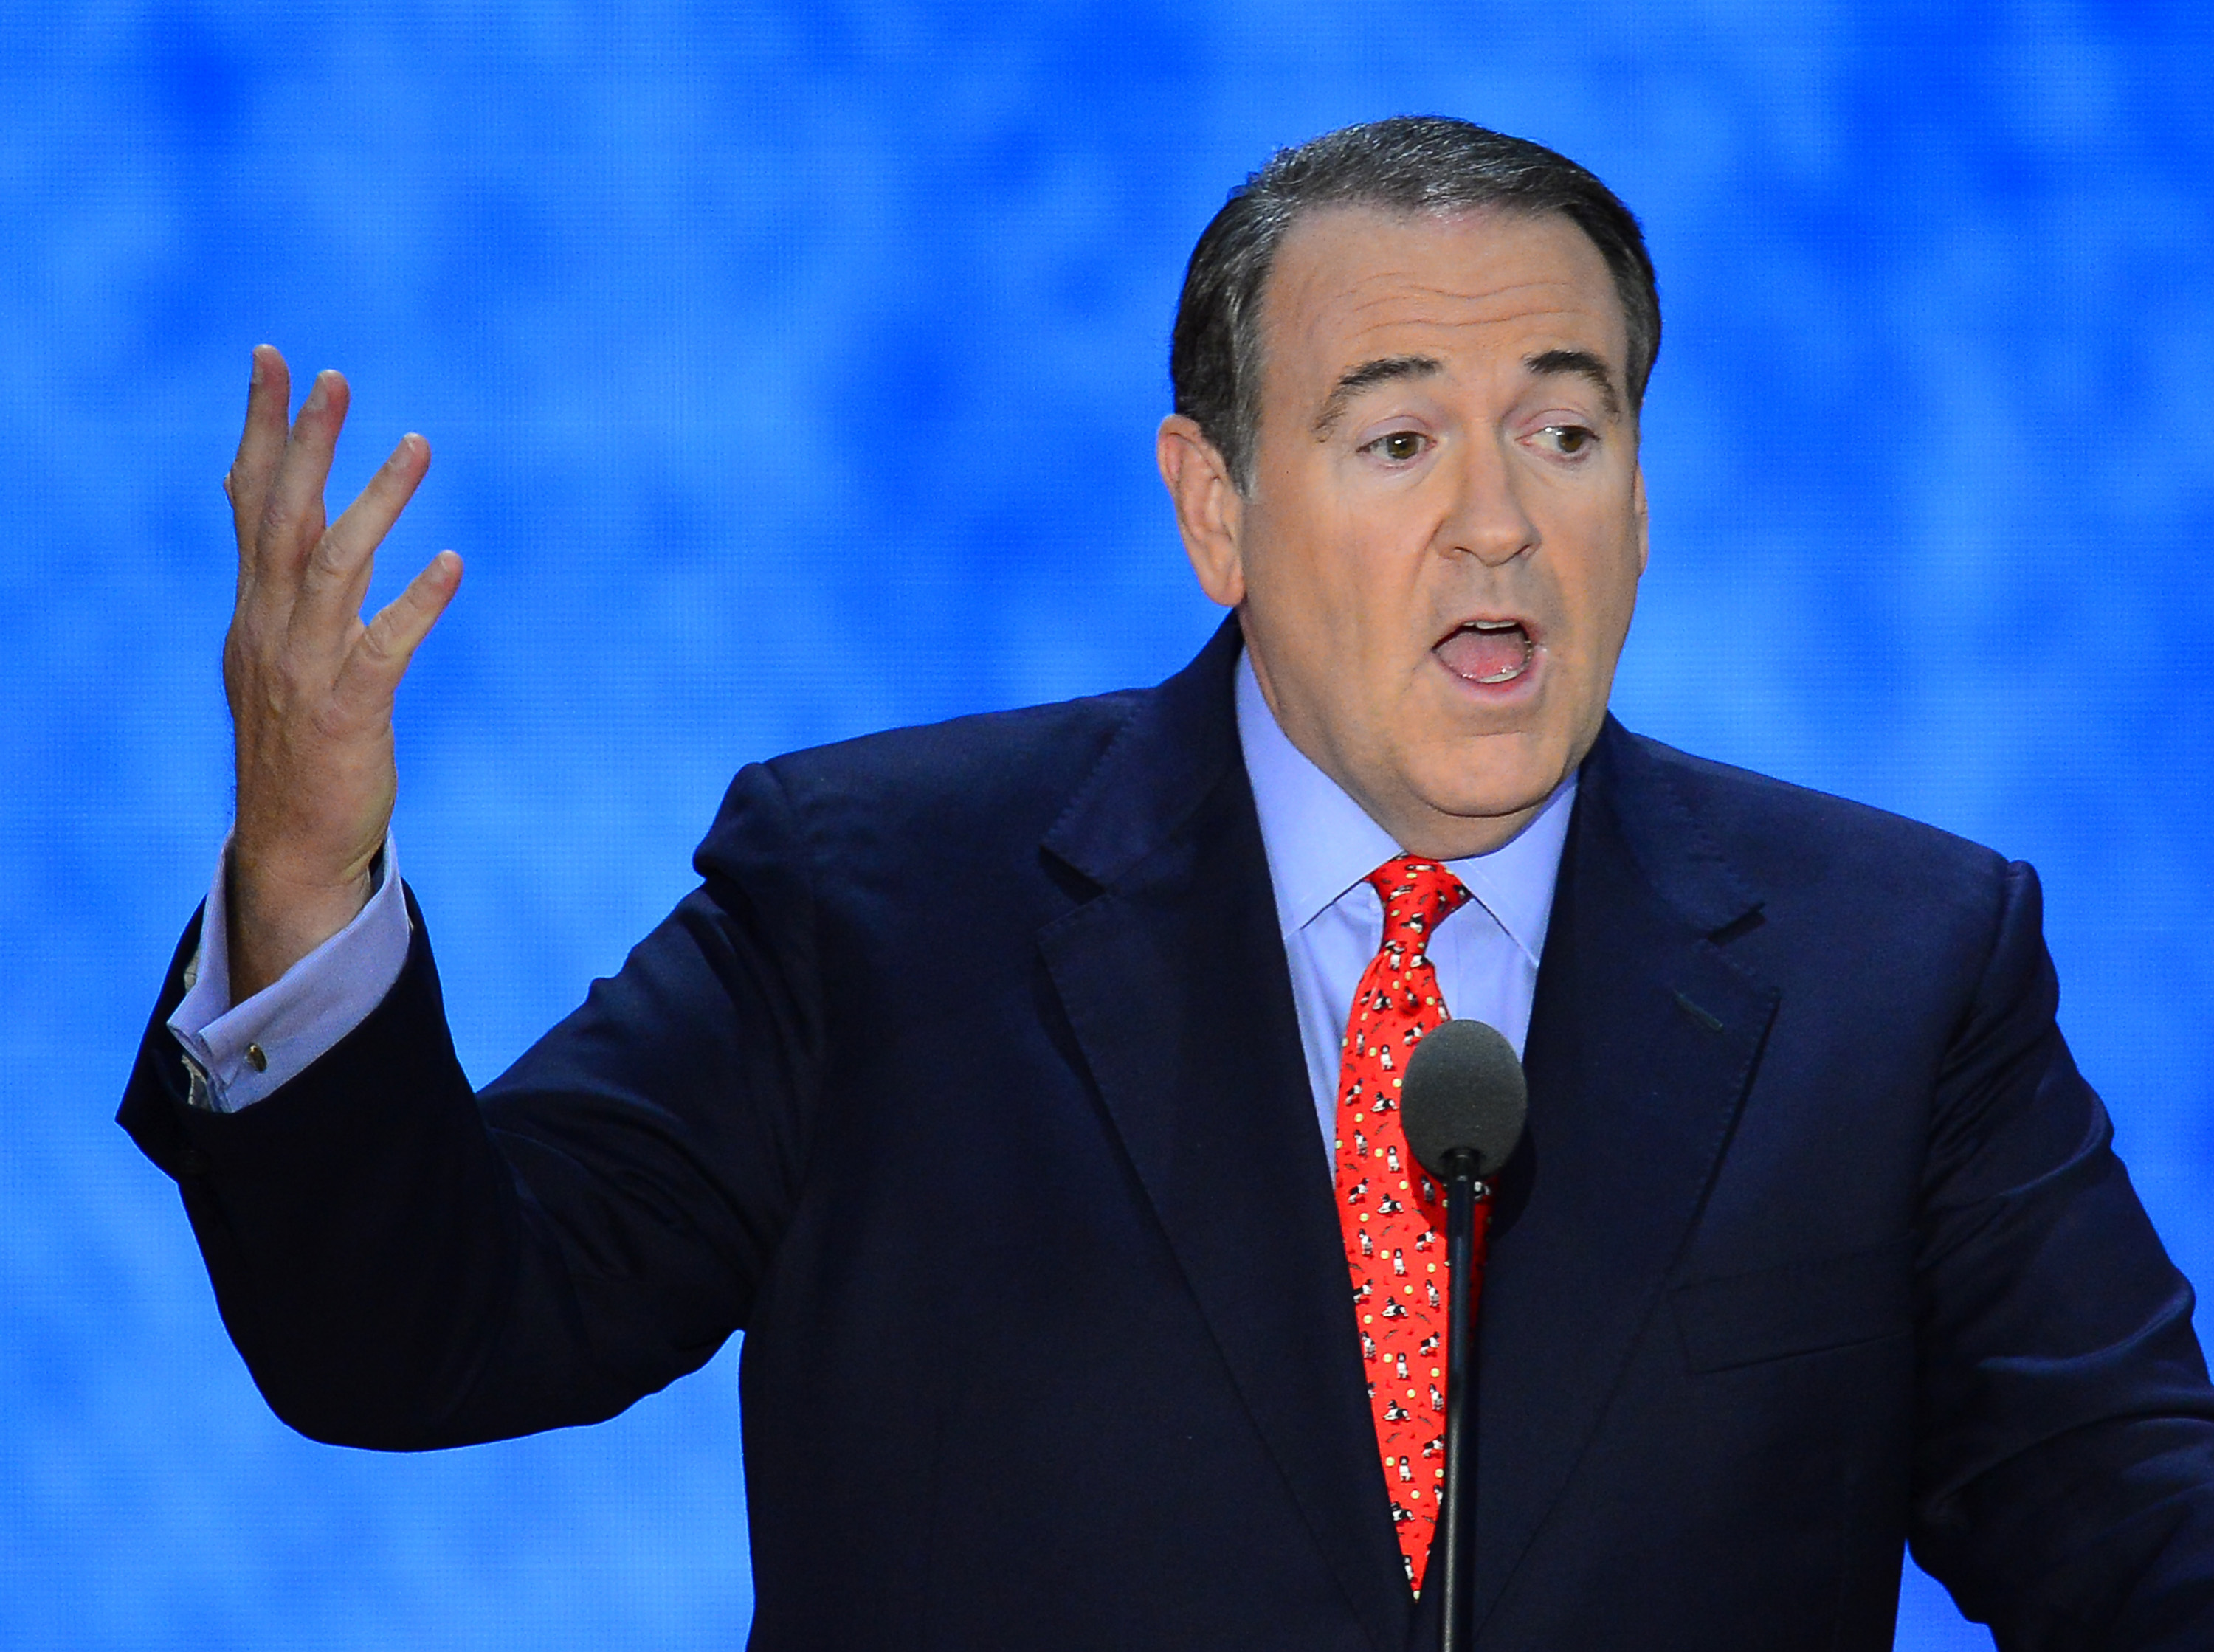 Mike Huckabee, former governor of Arkansas, speaks at the Republican National Convention in Tampa, Florida